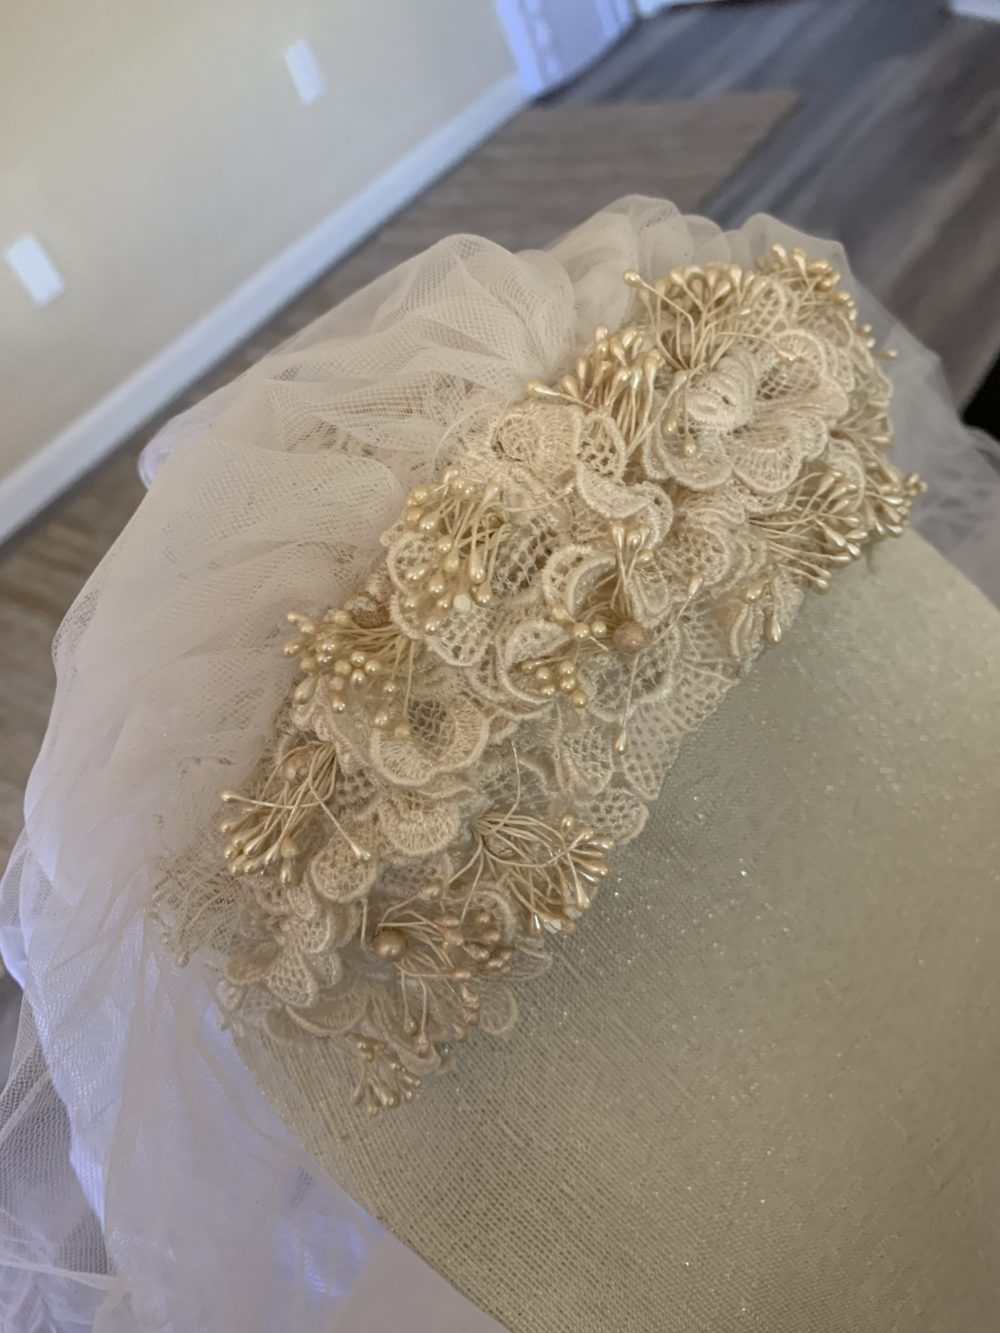 Vintage Ivory Headpiece & Tulle 2 Layer Tier Veil Bridal Wedding Accessory